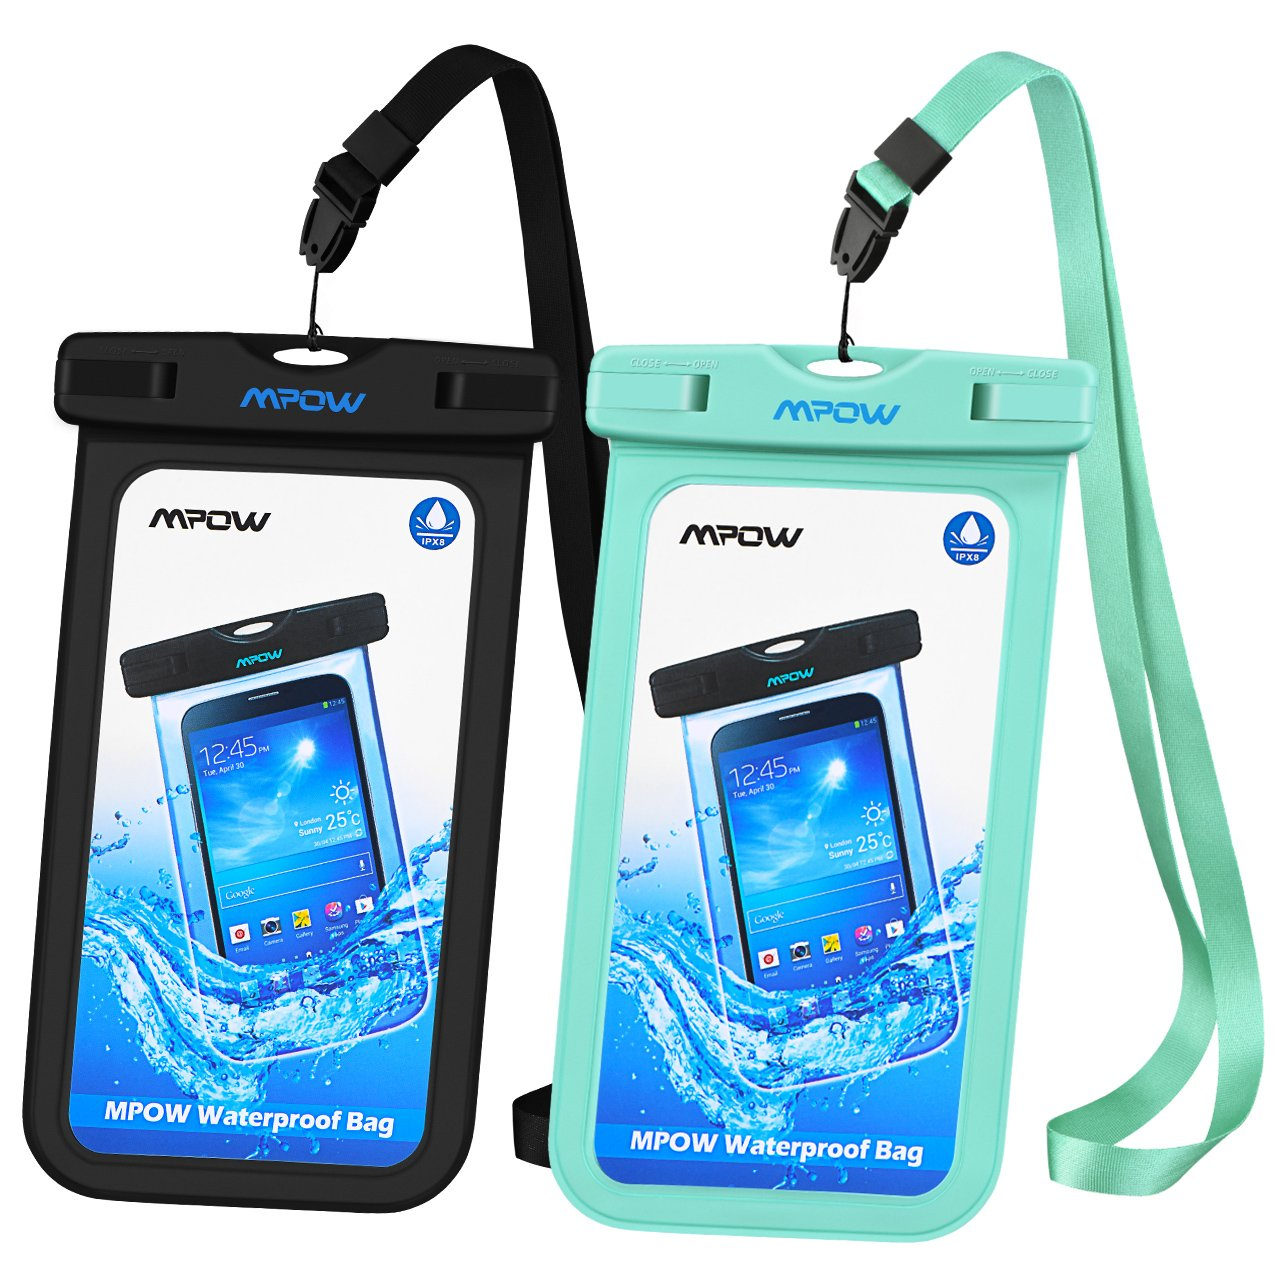 Mpow Universal Waterproof Case, IPX8 Waterproof Phone Pouch Dry Bag Compatible for iPhone Xs Max/Xs/Xr/X/8/8plus/7/7plus/6s/6/6s Plus Galaxy s9/s8/s7 Google Pixel HTC12 (Light Blue+Black 2-Pack)